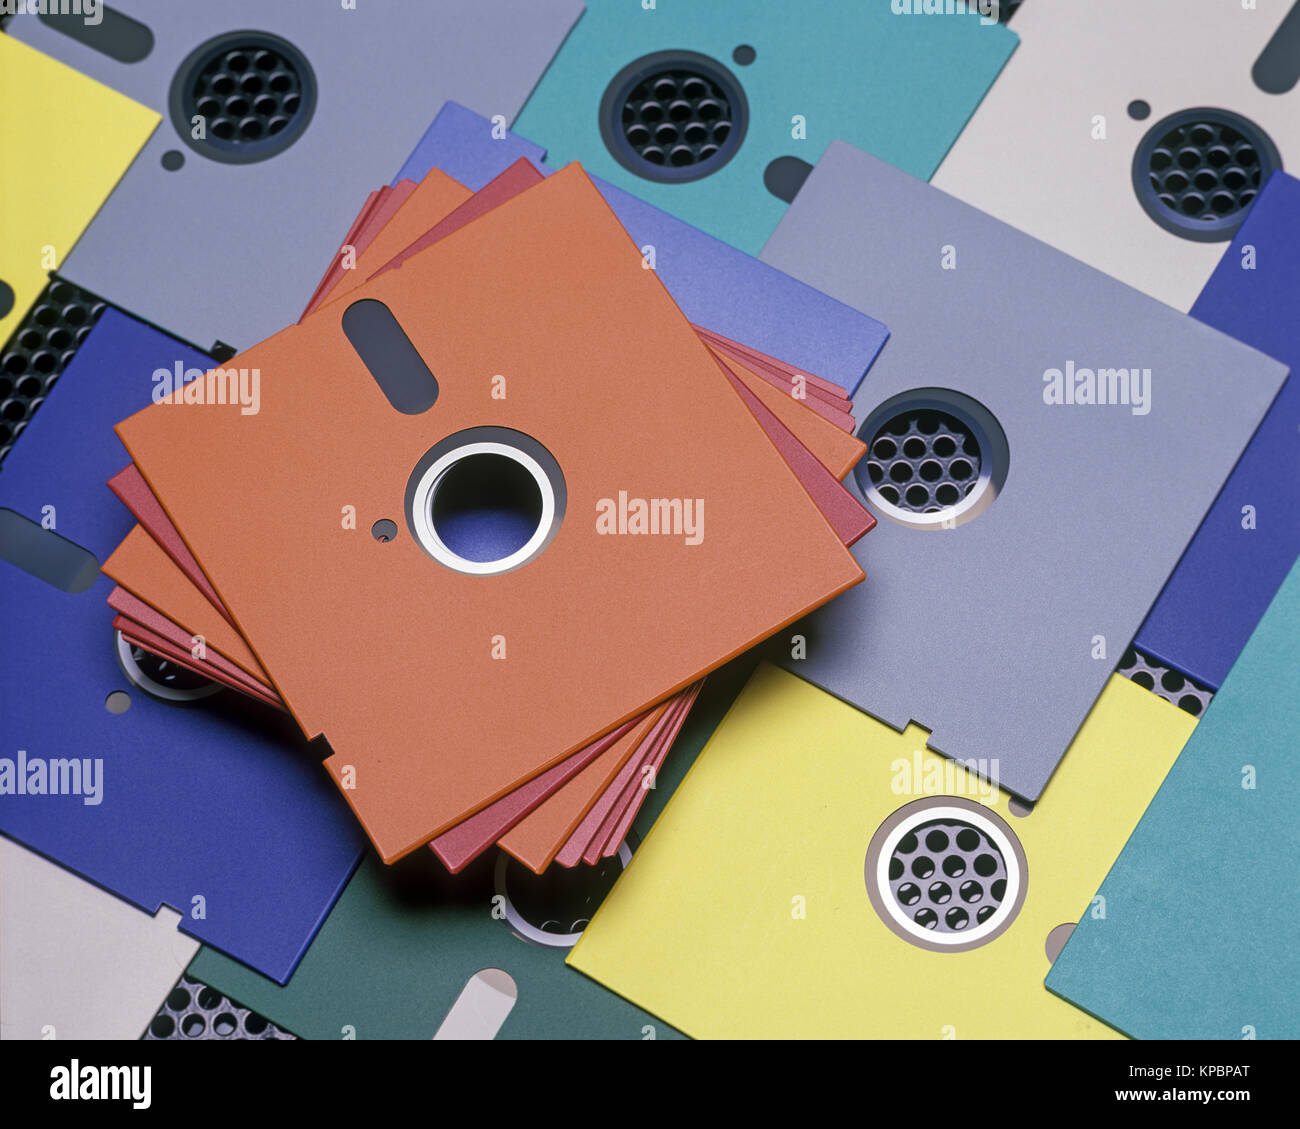 1989 HISTORICAL STACK OF 5.25 INCH MULTICOLORED FLOPPY COMPUTER DISCS ON BLACK METAL SURFACE (©IBM 1973) - Stock Image